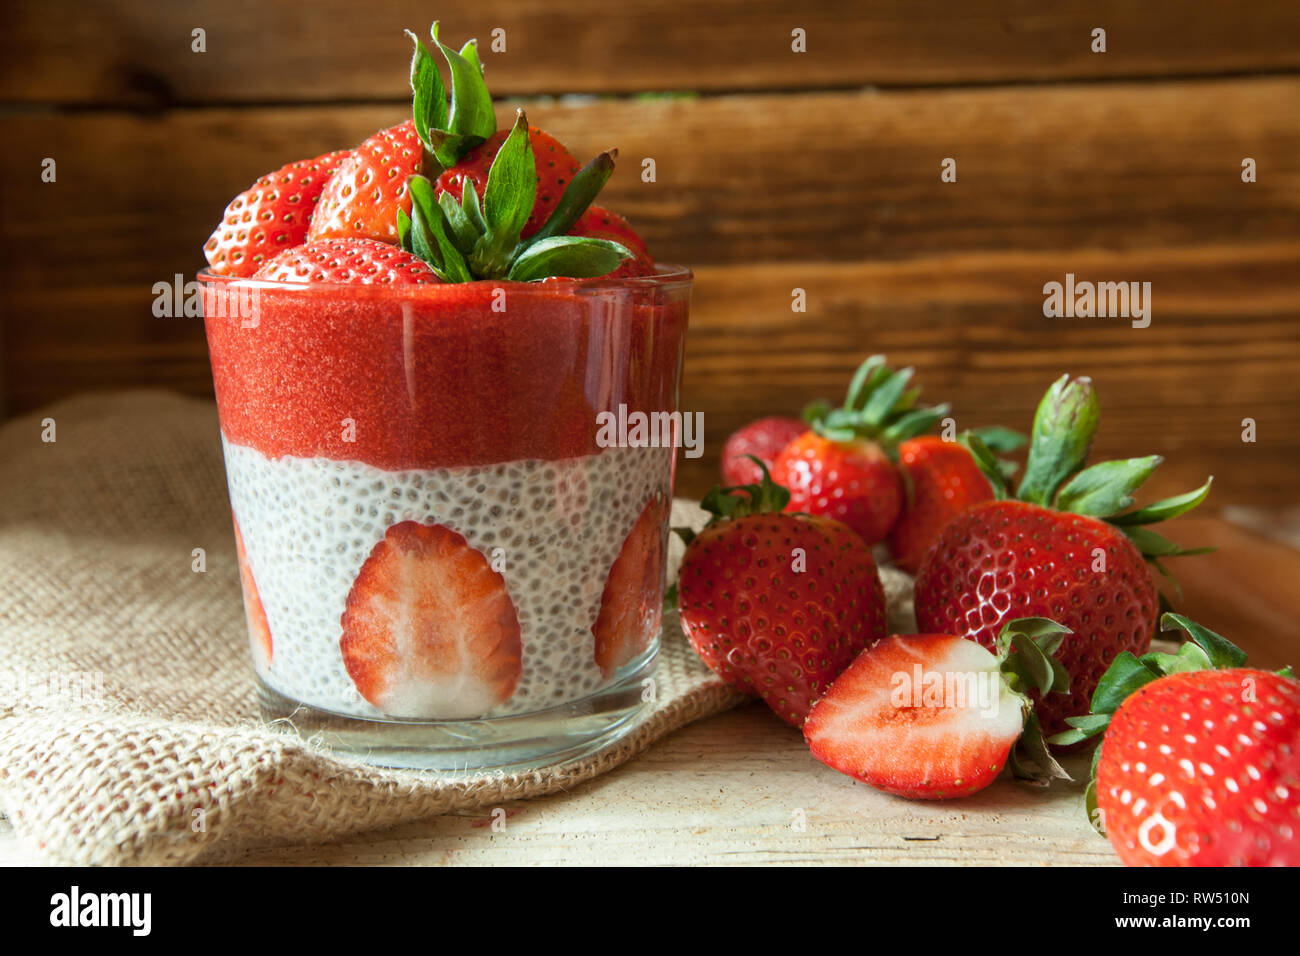 Low Carb Strawberry and chia puddings in a glass, wood background Stock Photo